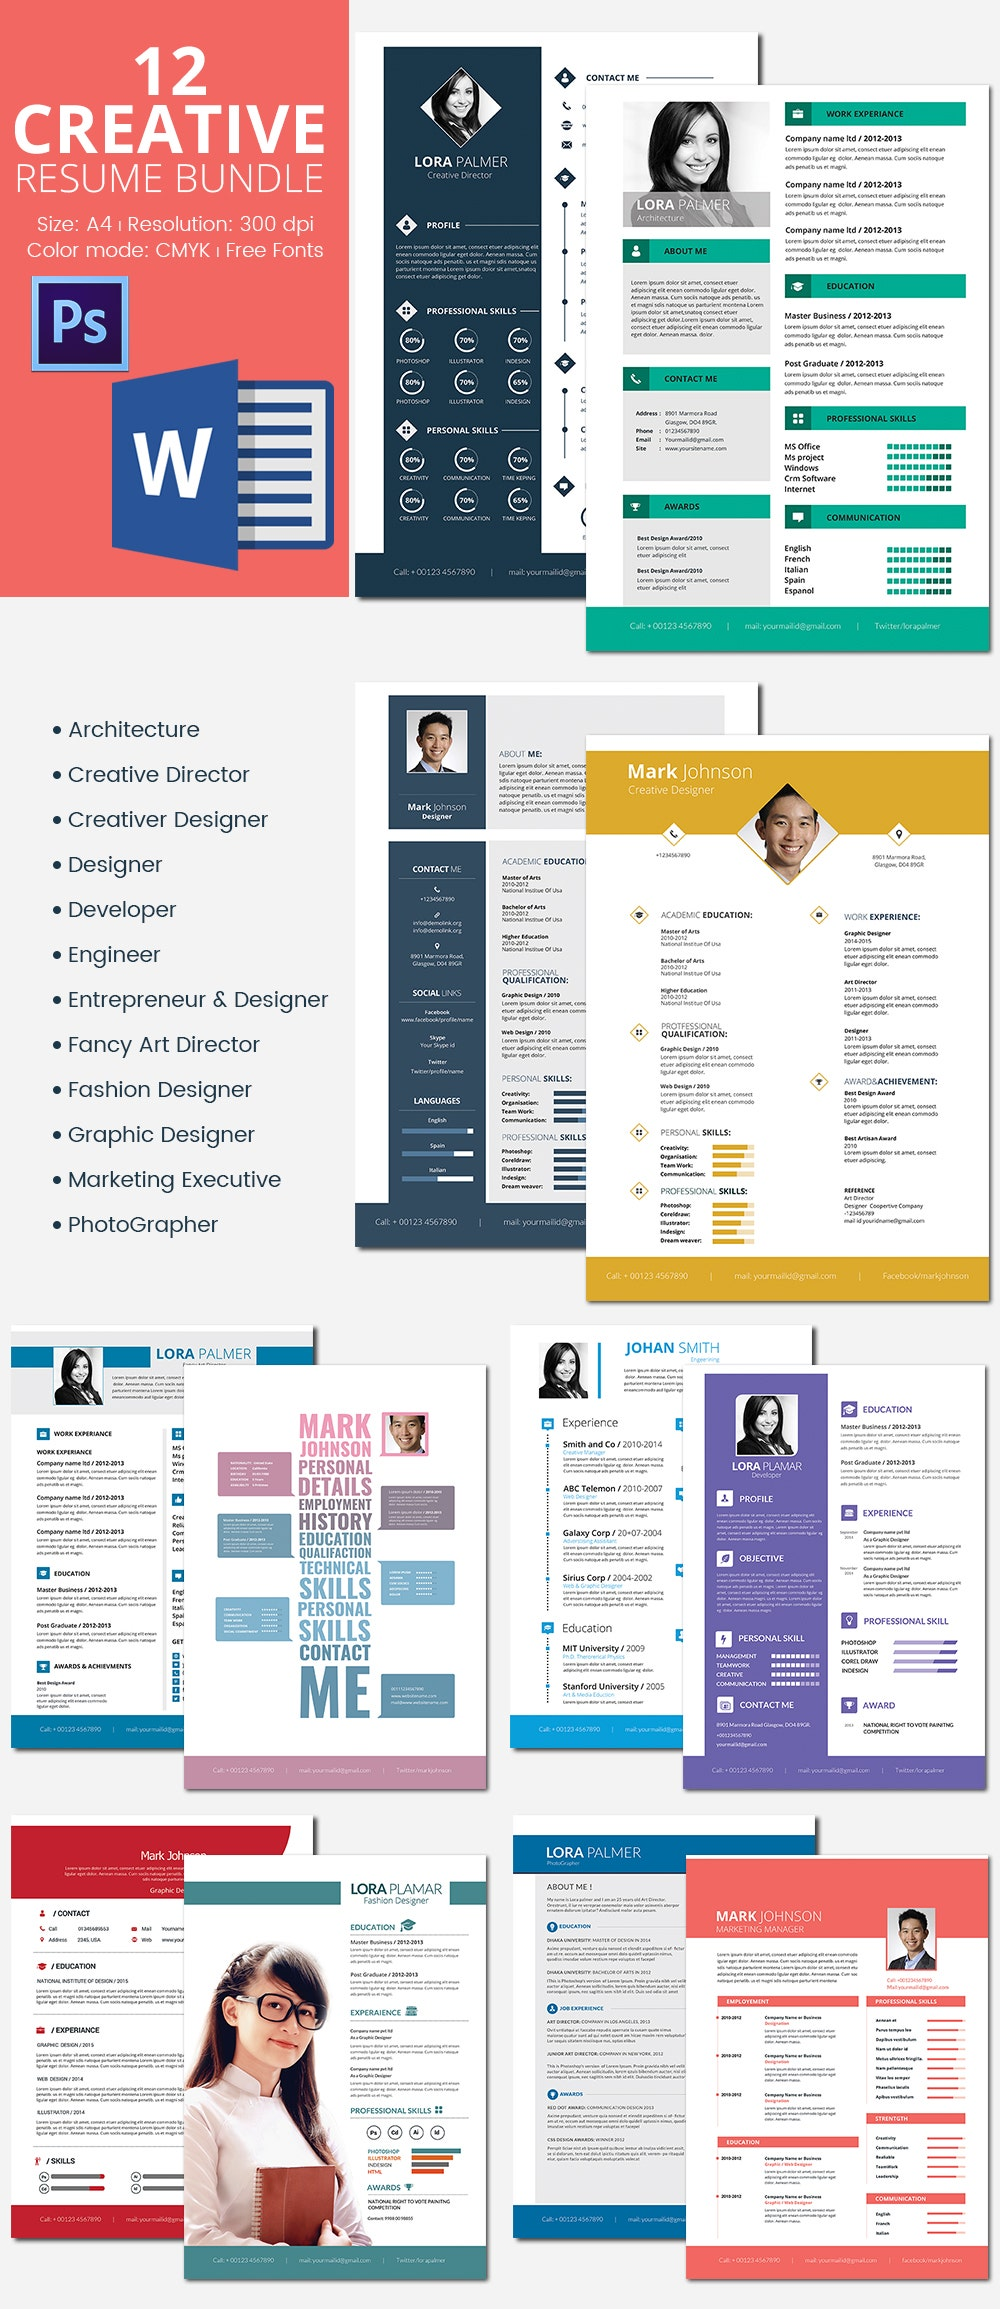 12 resume bundle templates. Resume Example. Resume CV Cover Letter